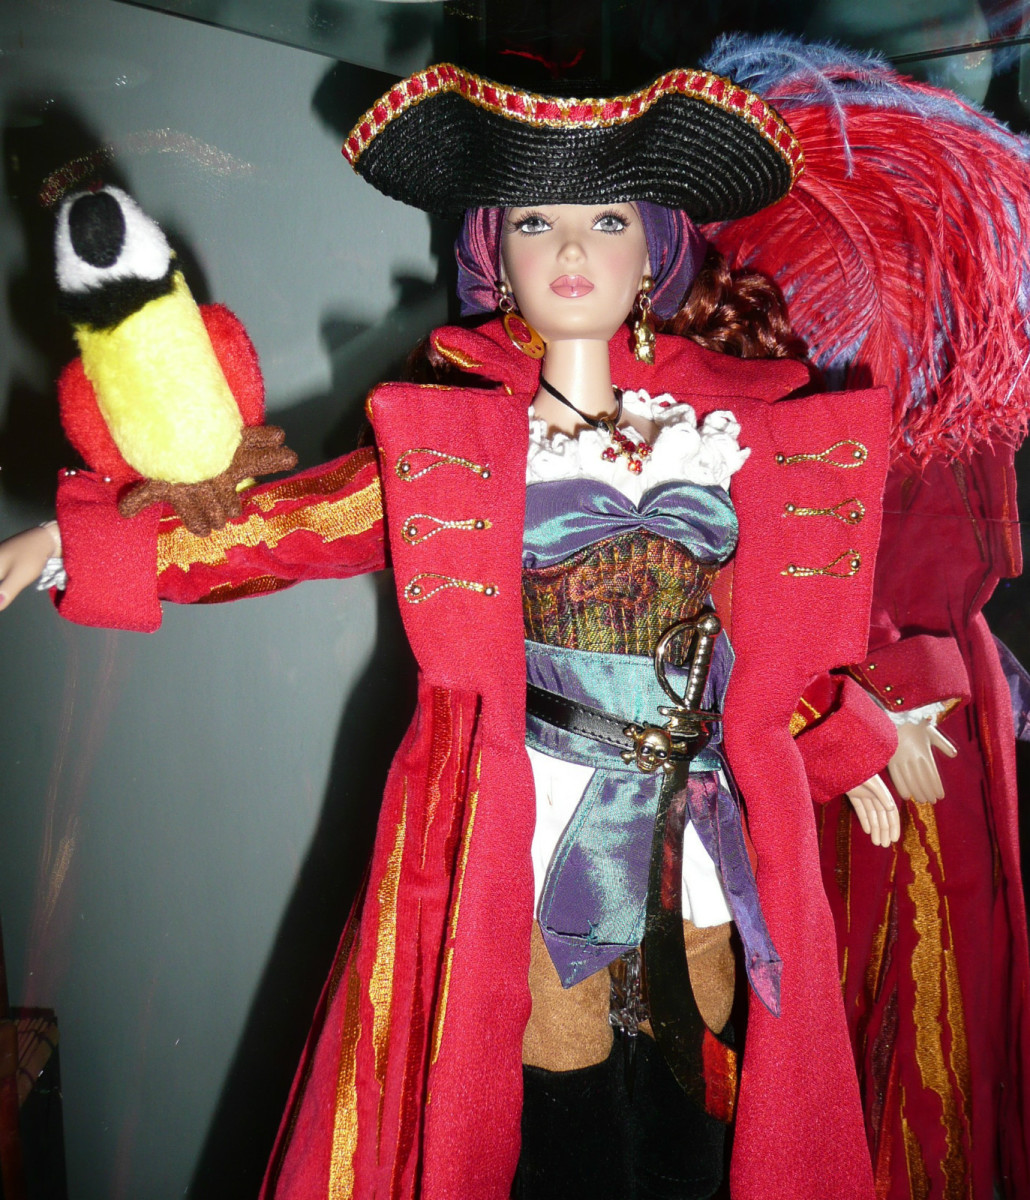 Madame Alexander Pirate Doll Set in Colorful Costume with Long Red Jacket and Pirate Hat with Feather Plumes - Includes Colorful Parrot